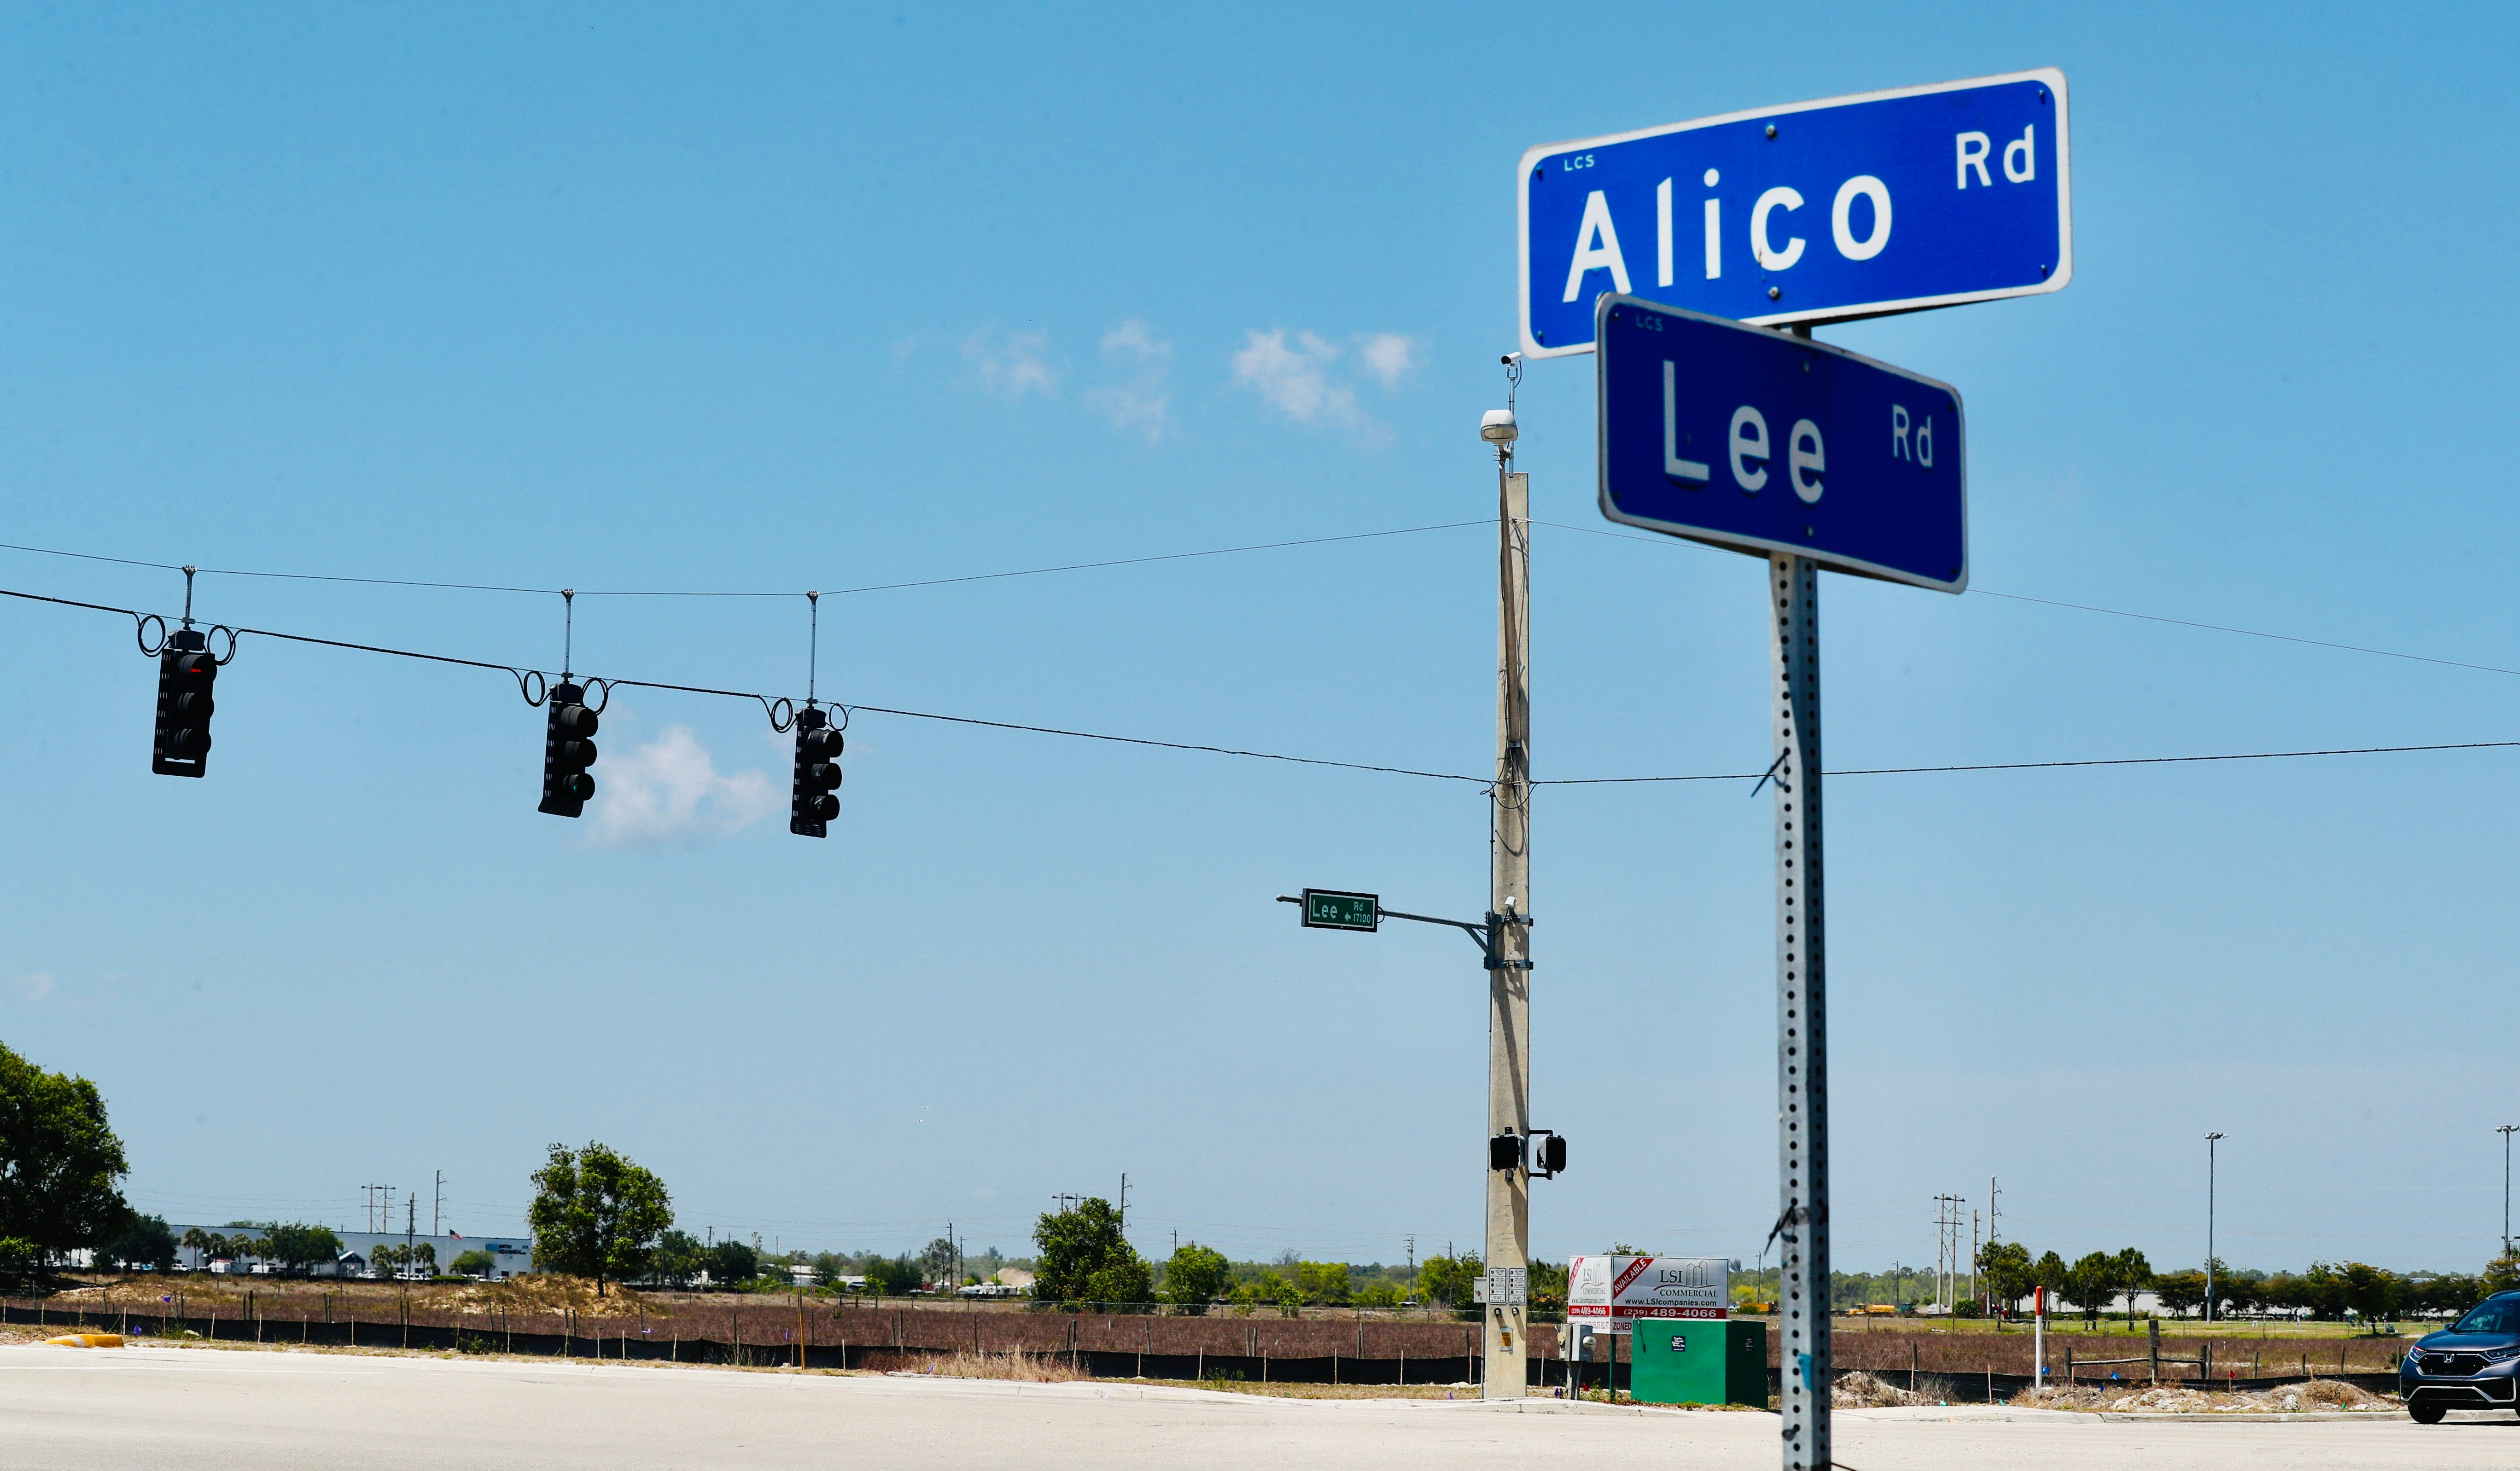 Seefried, business partner of Amazon, buys 60 acres off Alico Road for distribution center 3